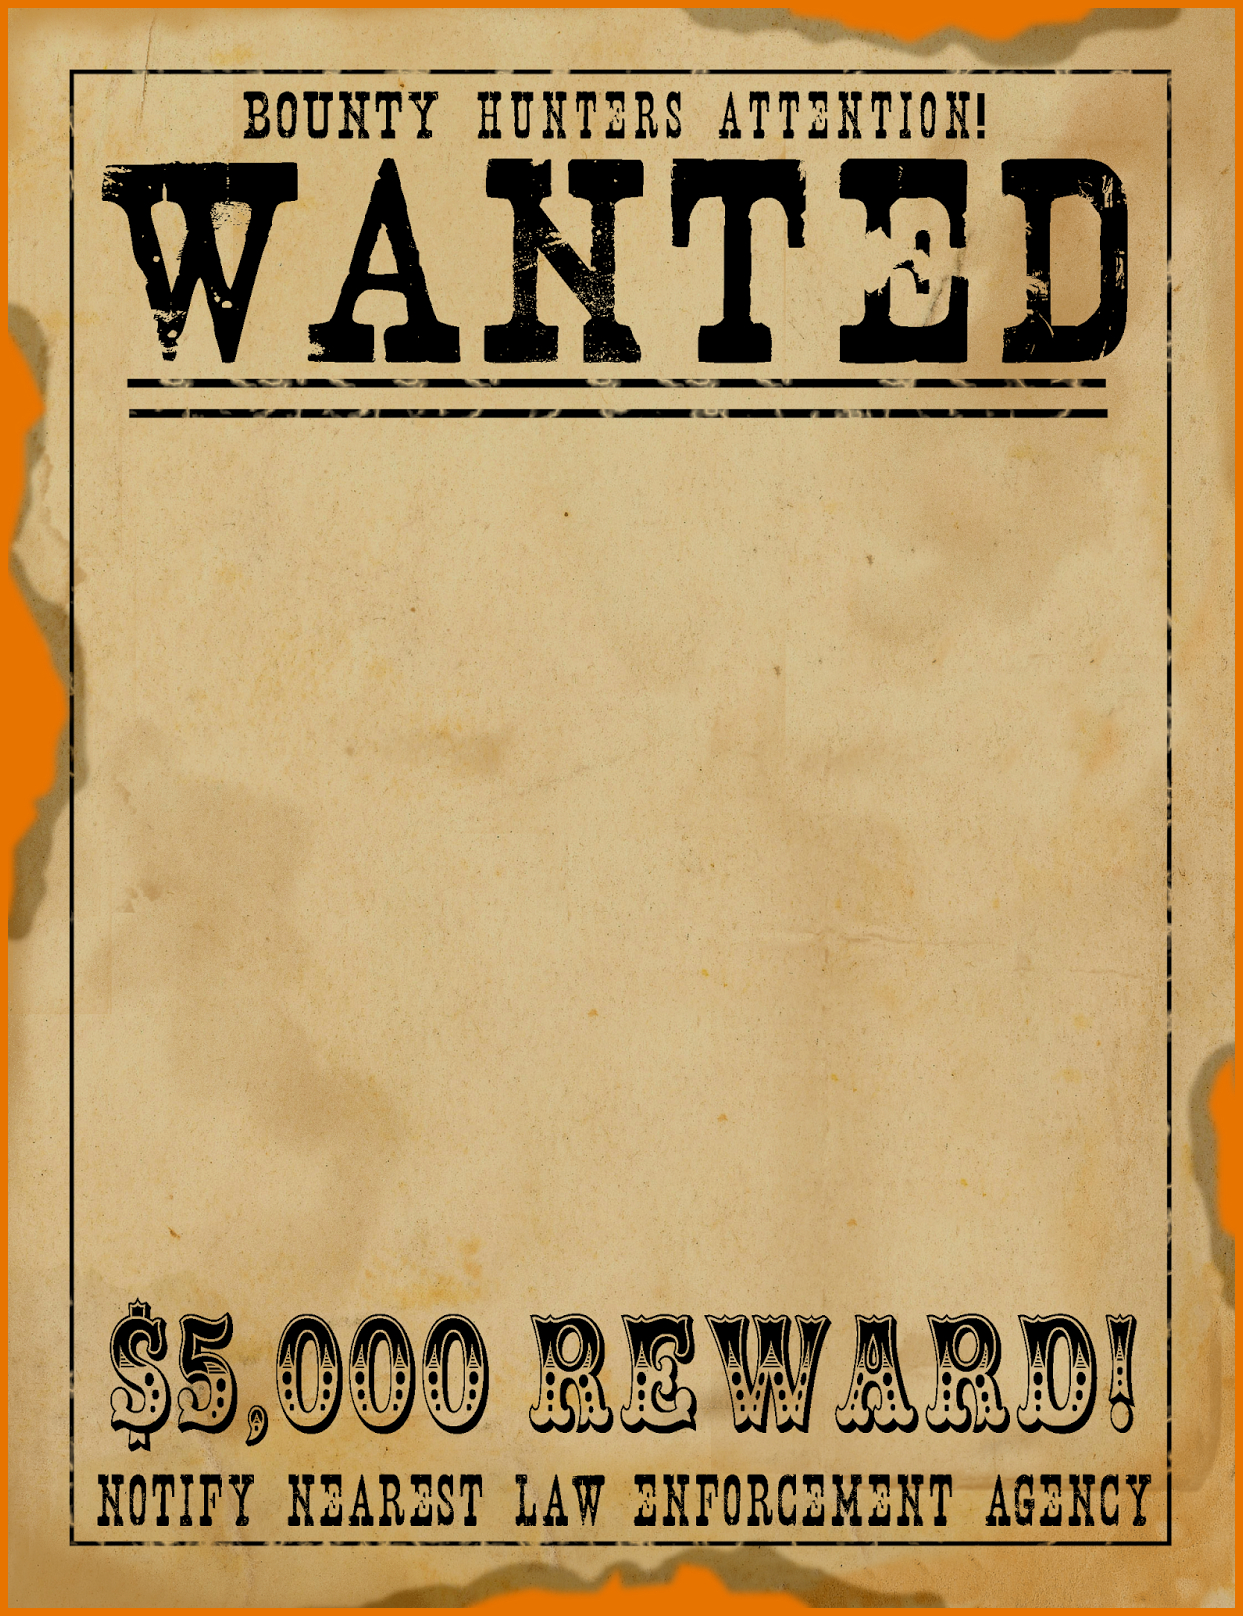 008 Template Ideas Wanted Poster Free Make Your Own 150813 - Free Printable Wanted Poster Invitations